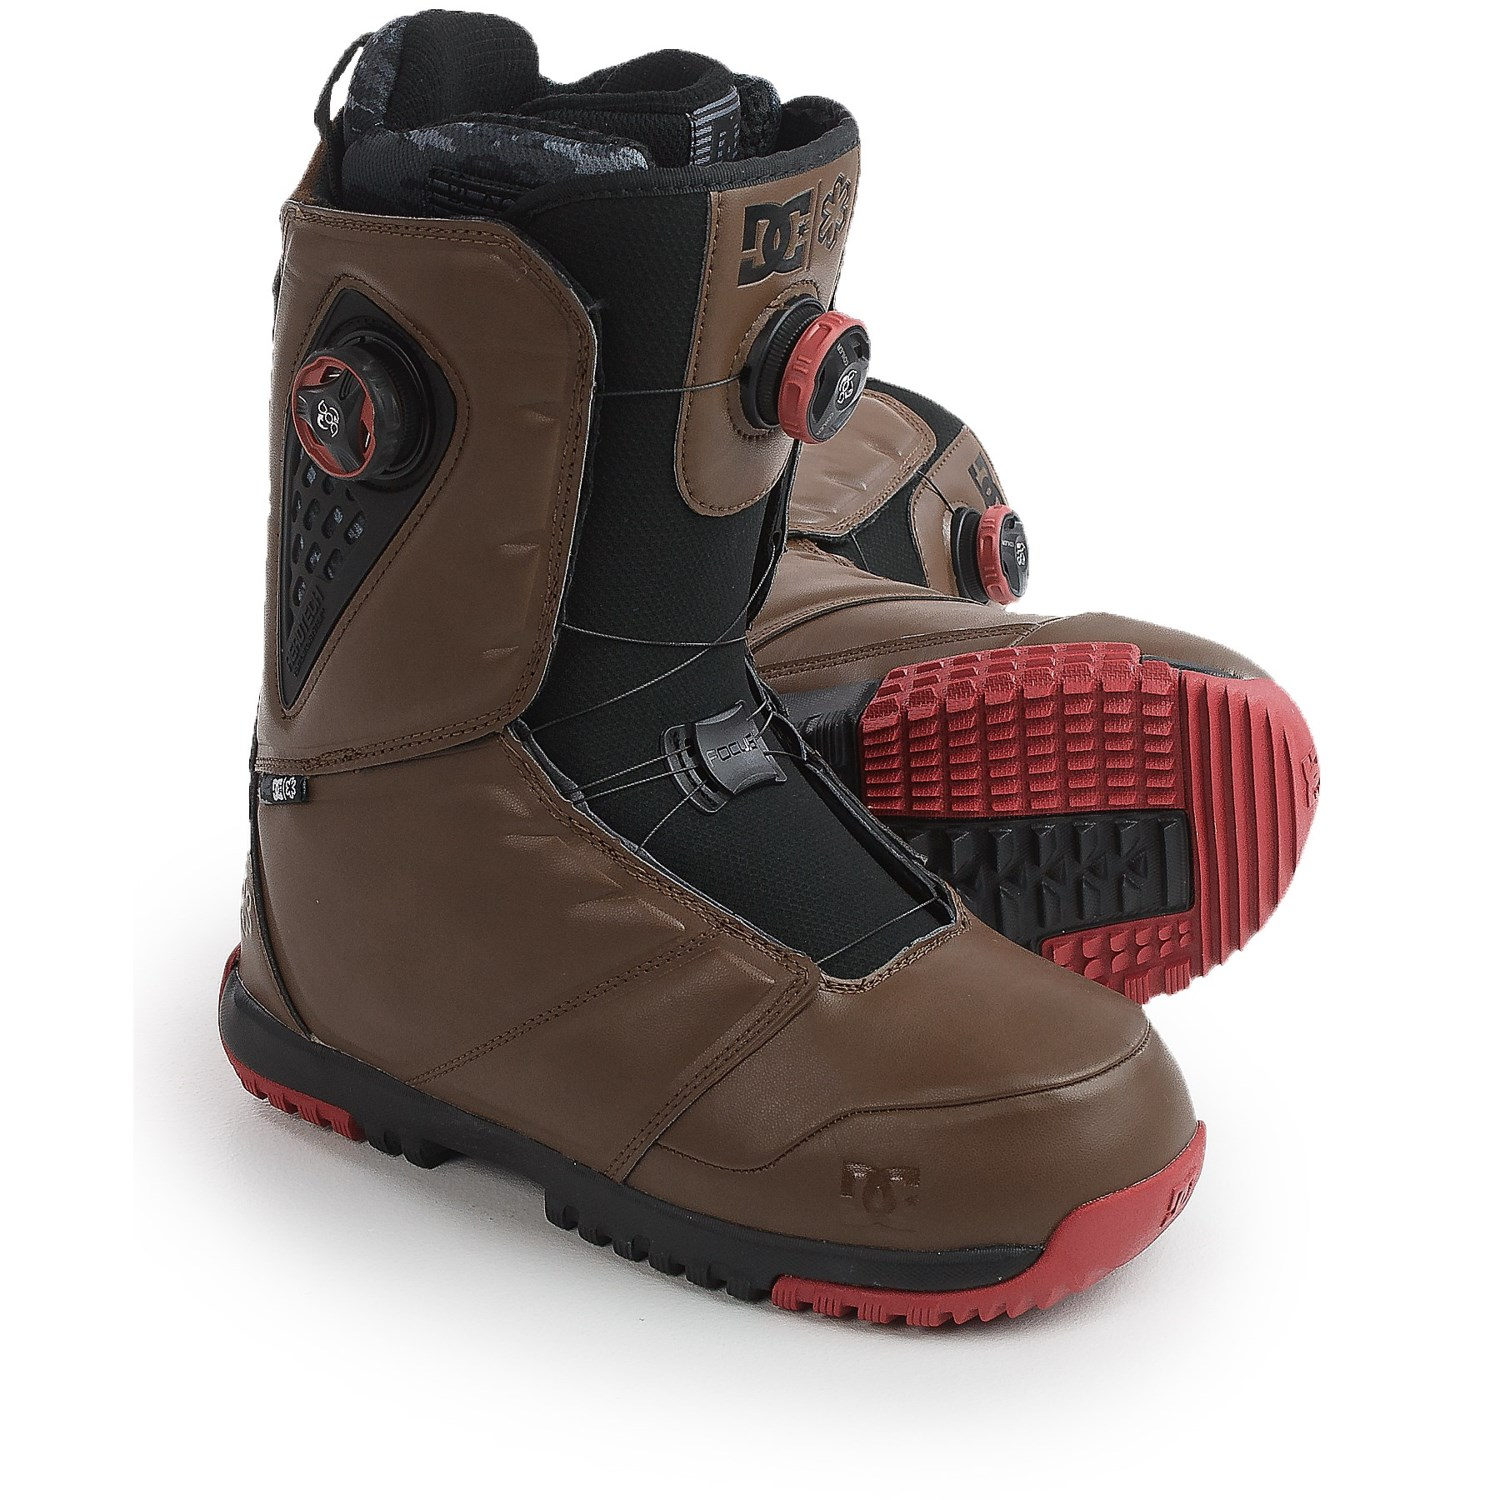 Dc Shoes Judge Boa 174 Snowboard Boots For Men Save 50